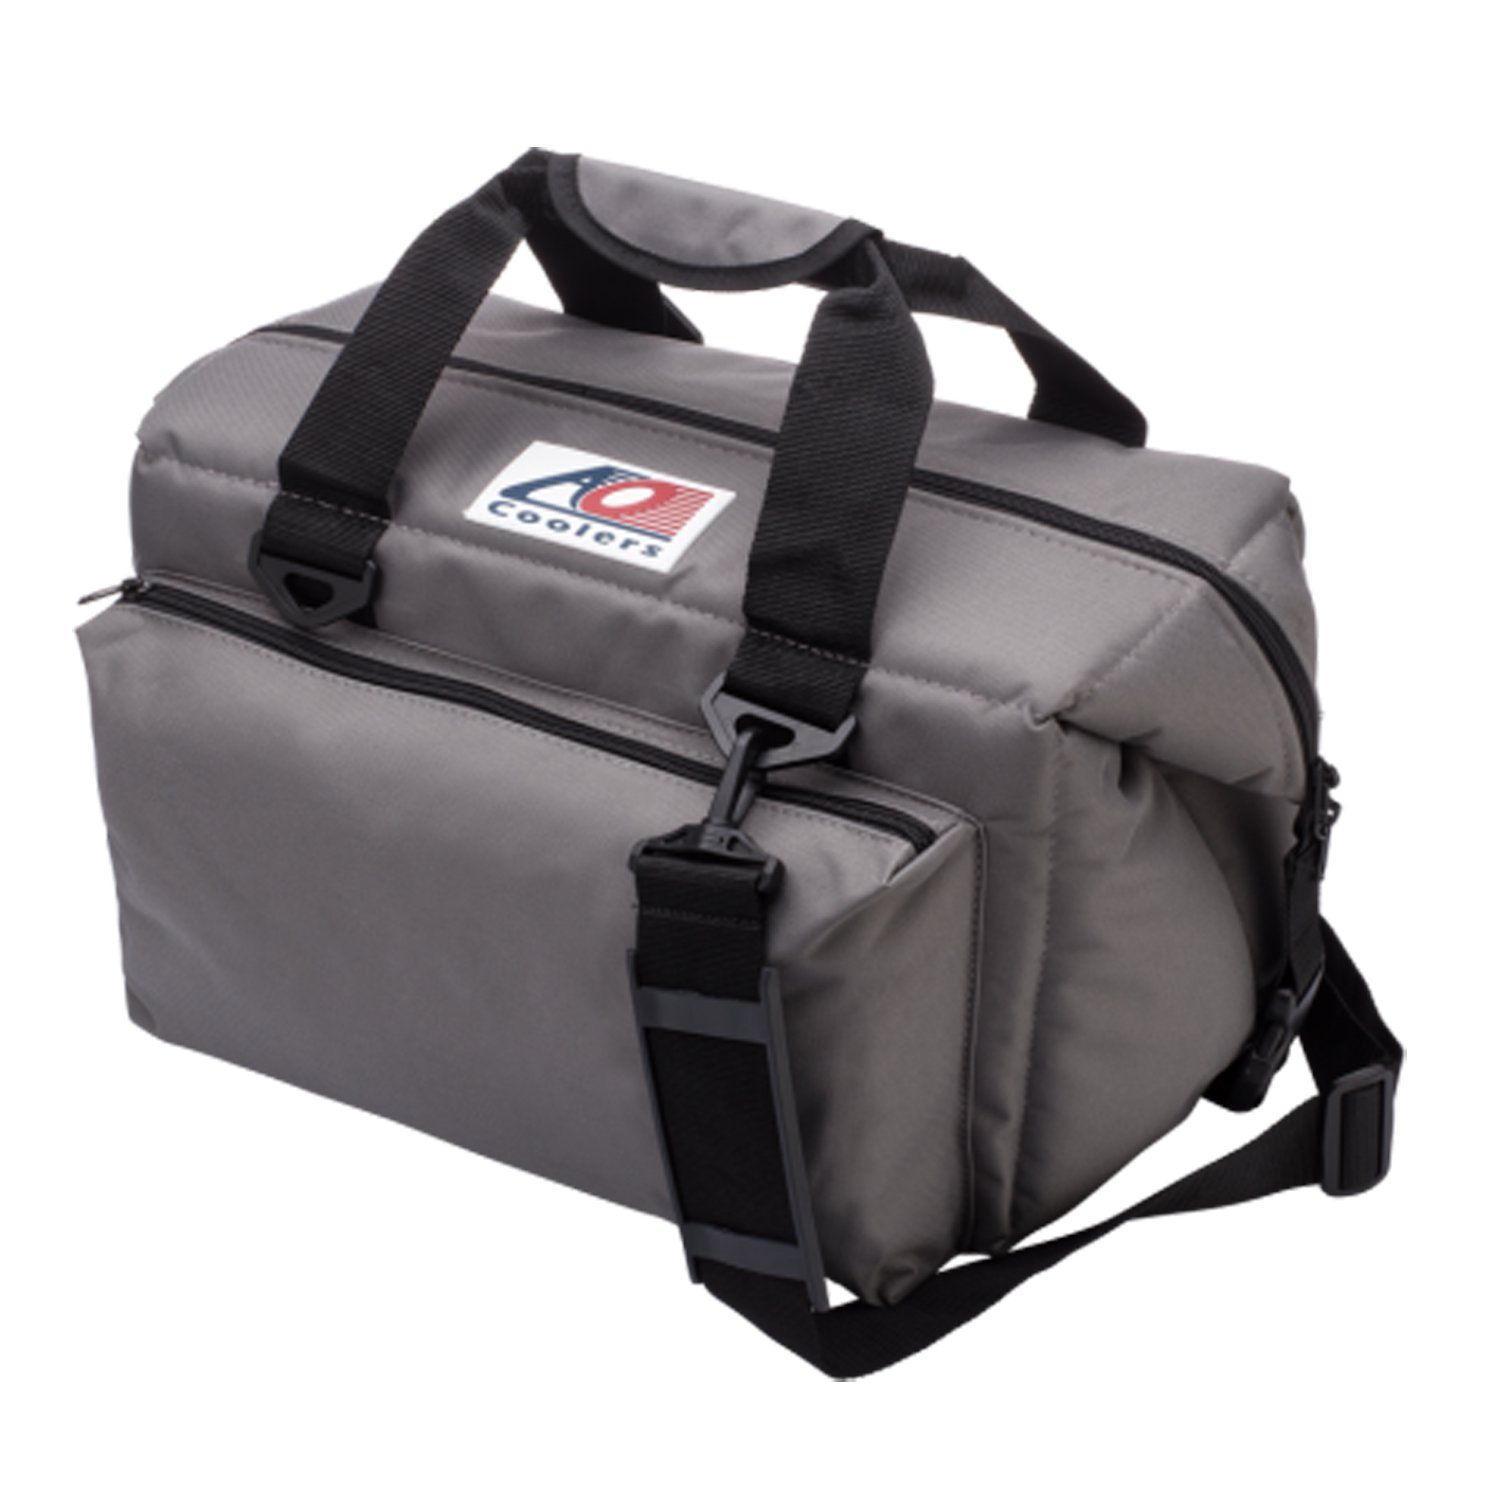 AO Coolers Deluxe Canvas Soft Cooler with High-Density Insulation, Charcoal, 24-Can by AO Coolers